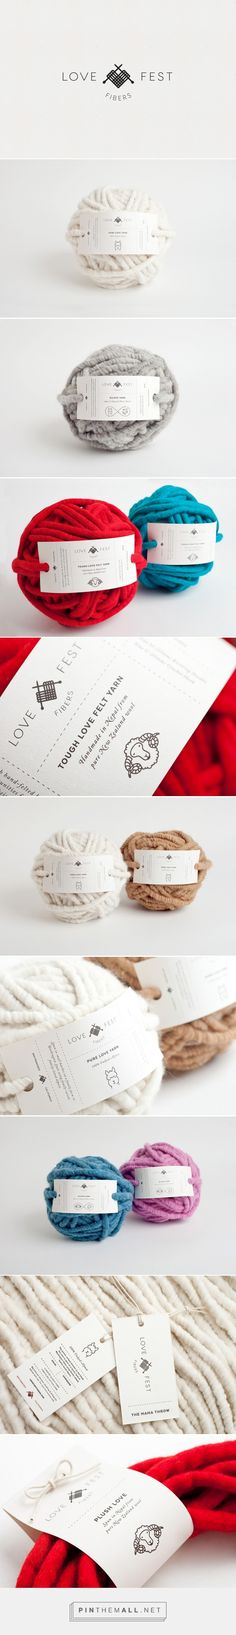 Love Fest Fibers on Behance by Menta Guadalajara, Mexico curated by Packaging Di. Love Fest Fibers on Behance by Menta Guadalajara, Mexico curated by Packaging Diva PD. If you are a yarn lover you'll love this simple tags and label packaging. Logo Design, Graphic Design Branding, Label Design, Identity Design, Logo Branding, Print Design, Visual Identity, Package Design, Brand Identity